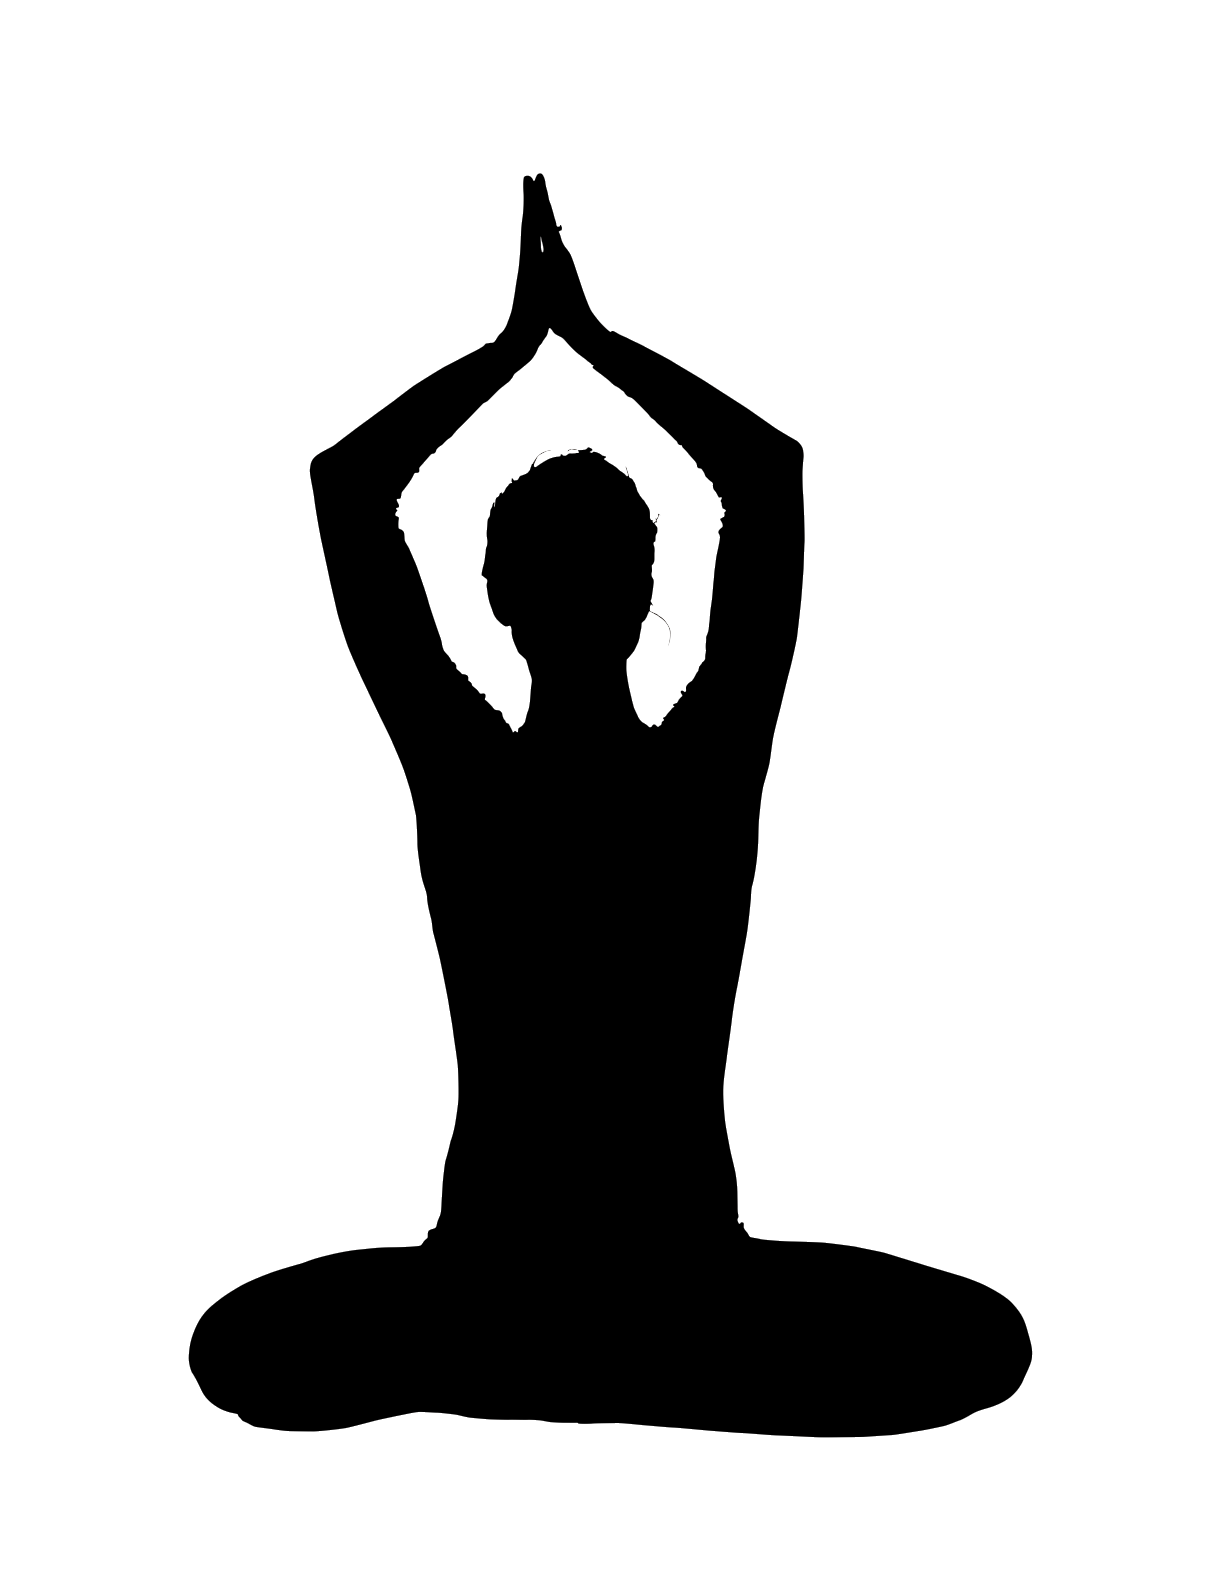 vector royalty free download Meditating clipart clip art. Drawing silhouette person